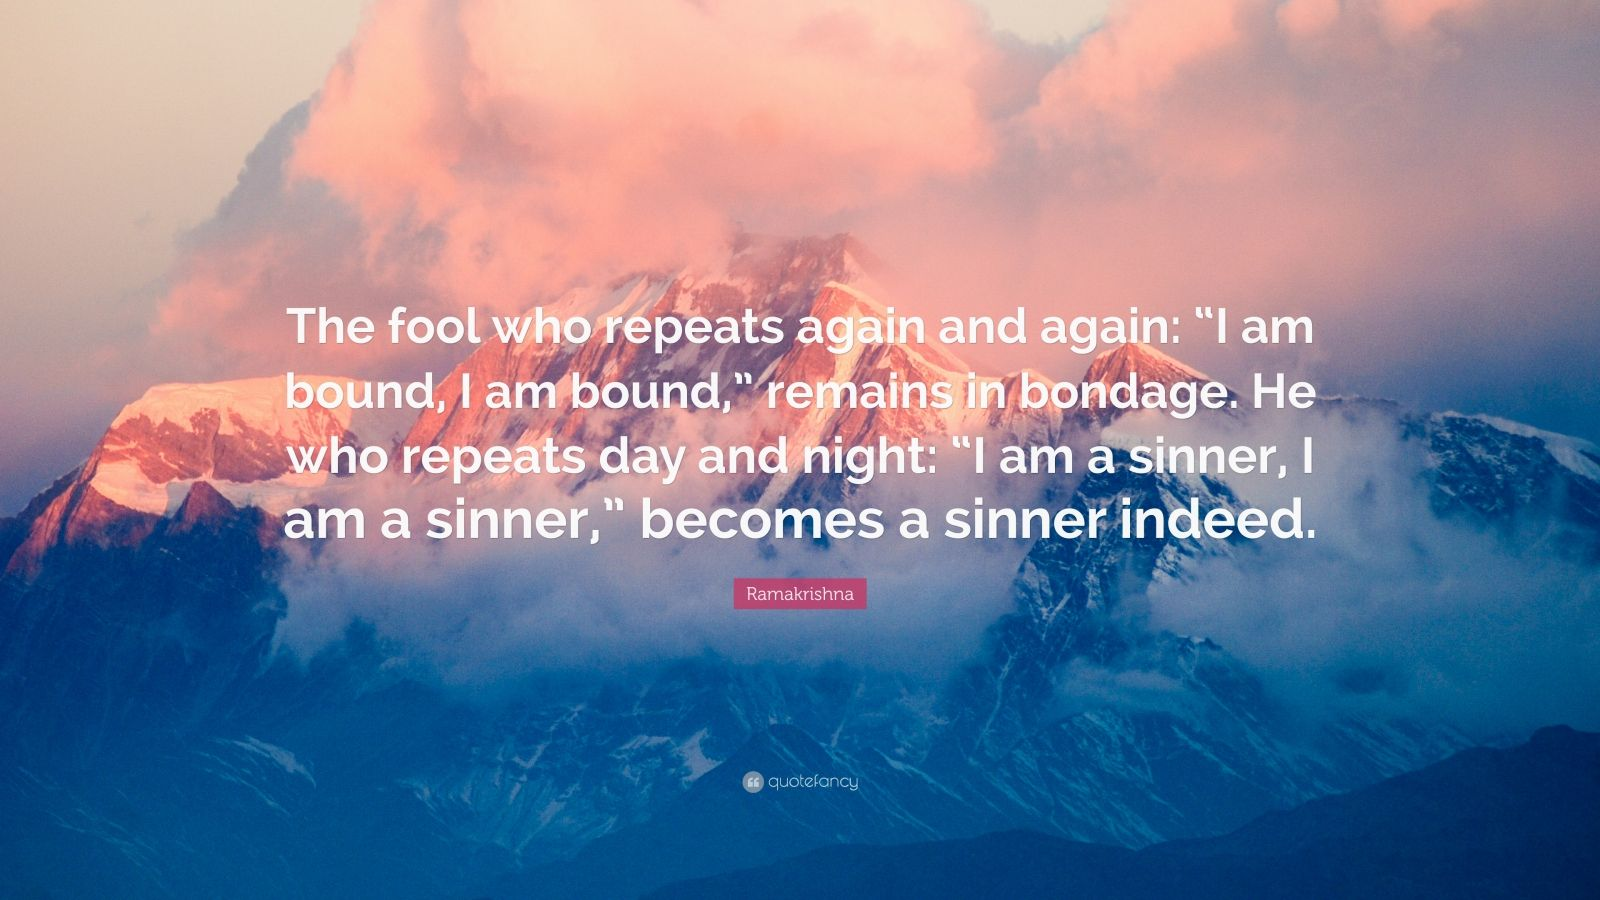 """Ramakrishna Quote: """"The fool who repeats again and again: """"I am bound, I am bound,"""" remains in bondage. He who repeats day and night: """"I am a sinner, I am a sinner,"""" becomes a sinner indeed."""""""